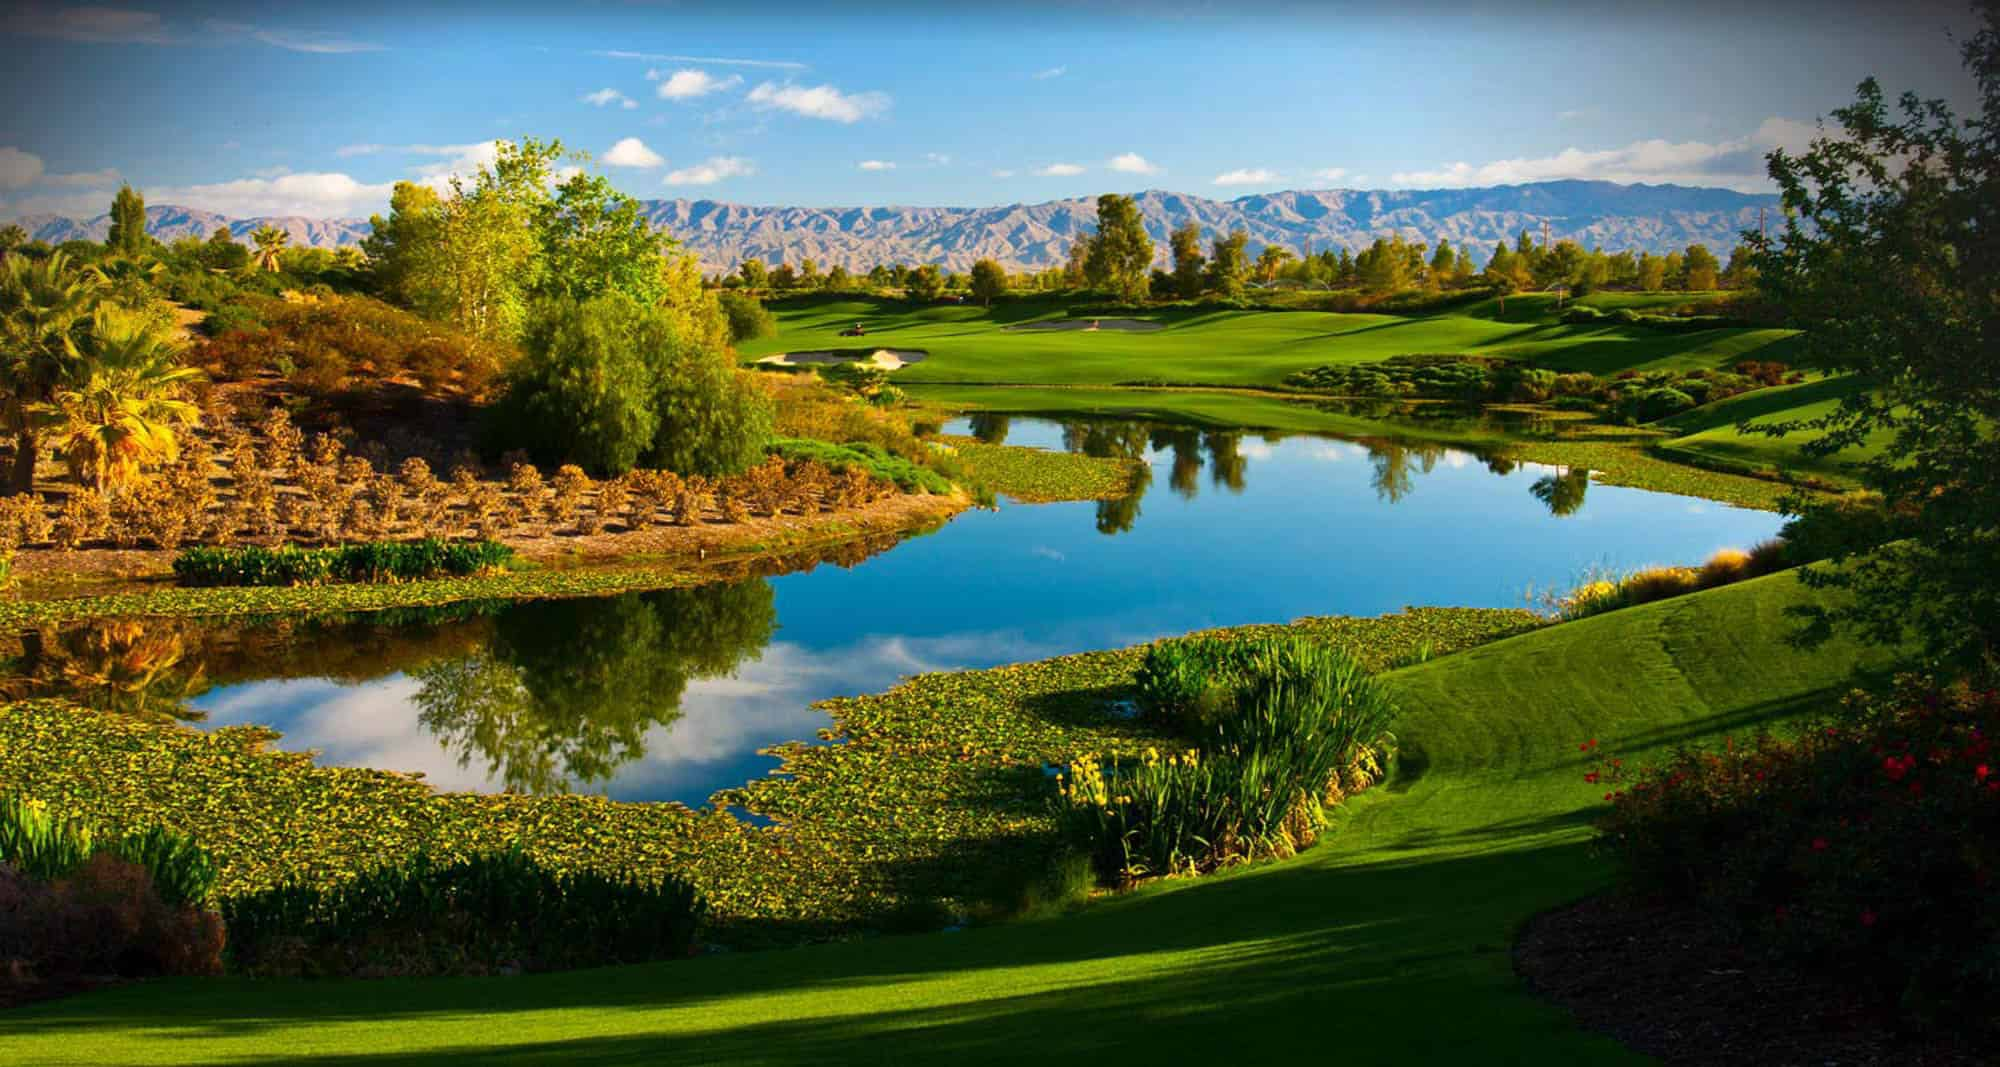 10 Top Golf Courses Around the World